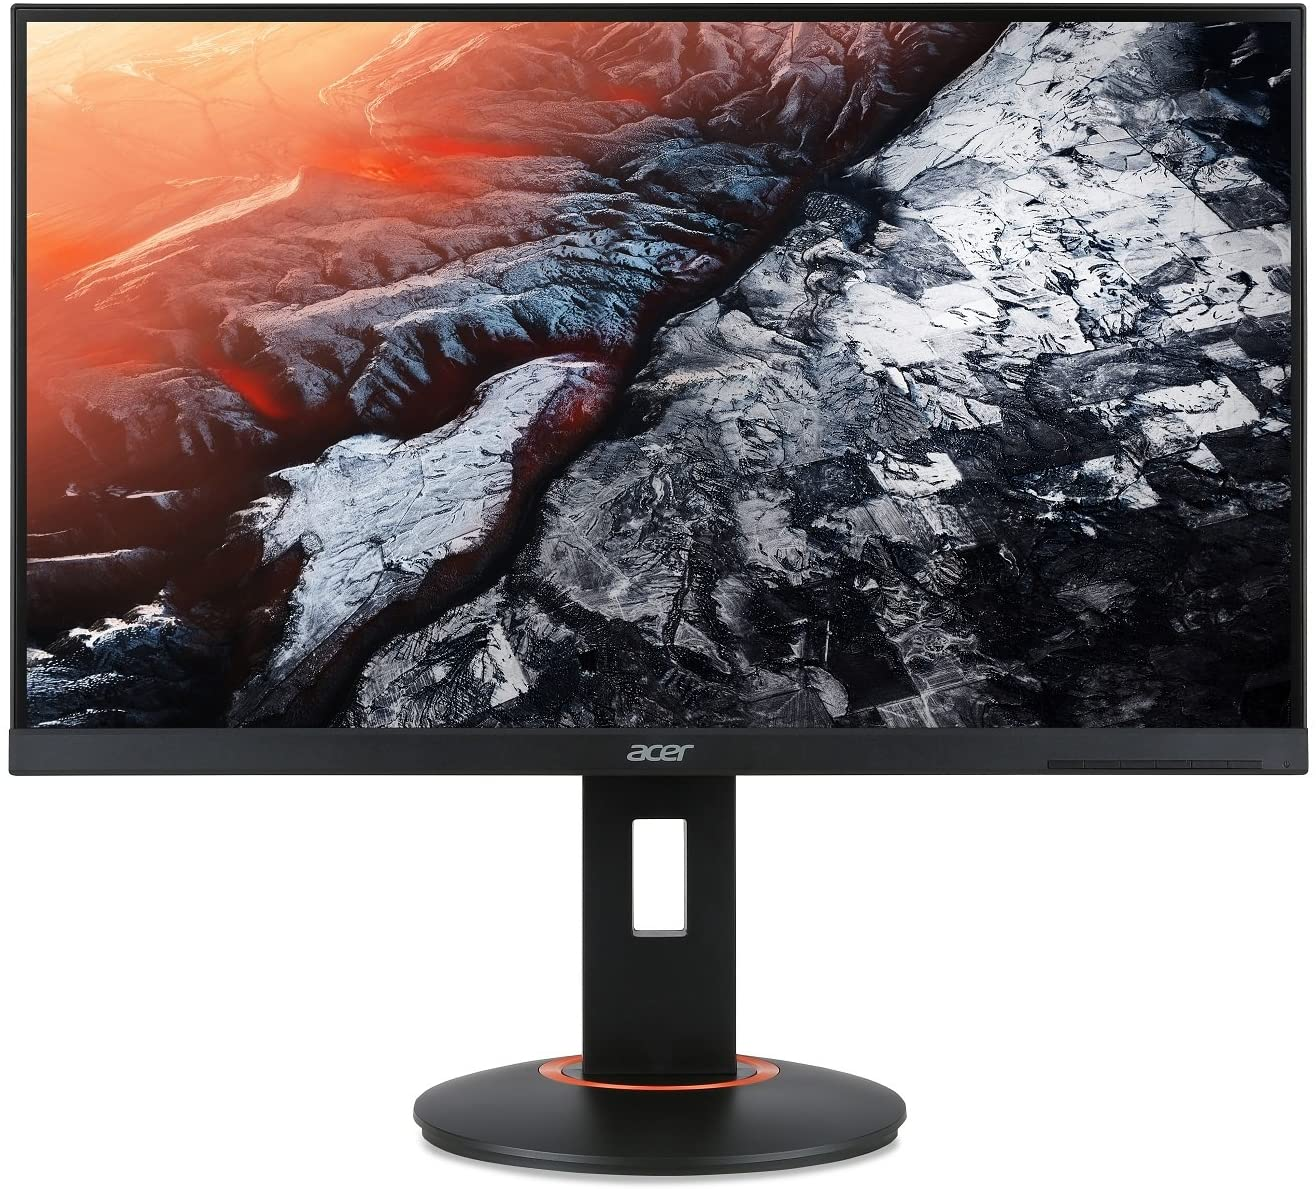 Acer XF270HU TN Gaming Monitor with 144Hz and FreeSync support is now priced at $275